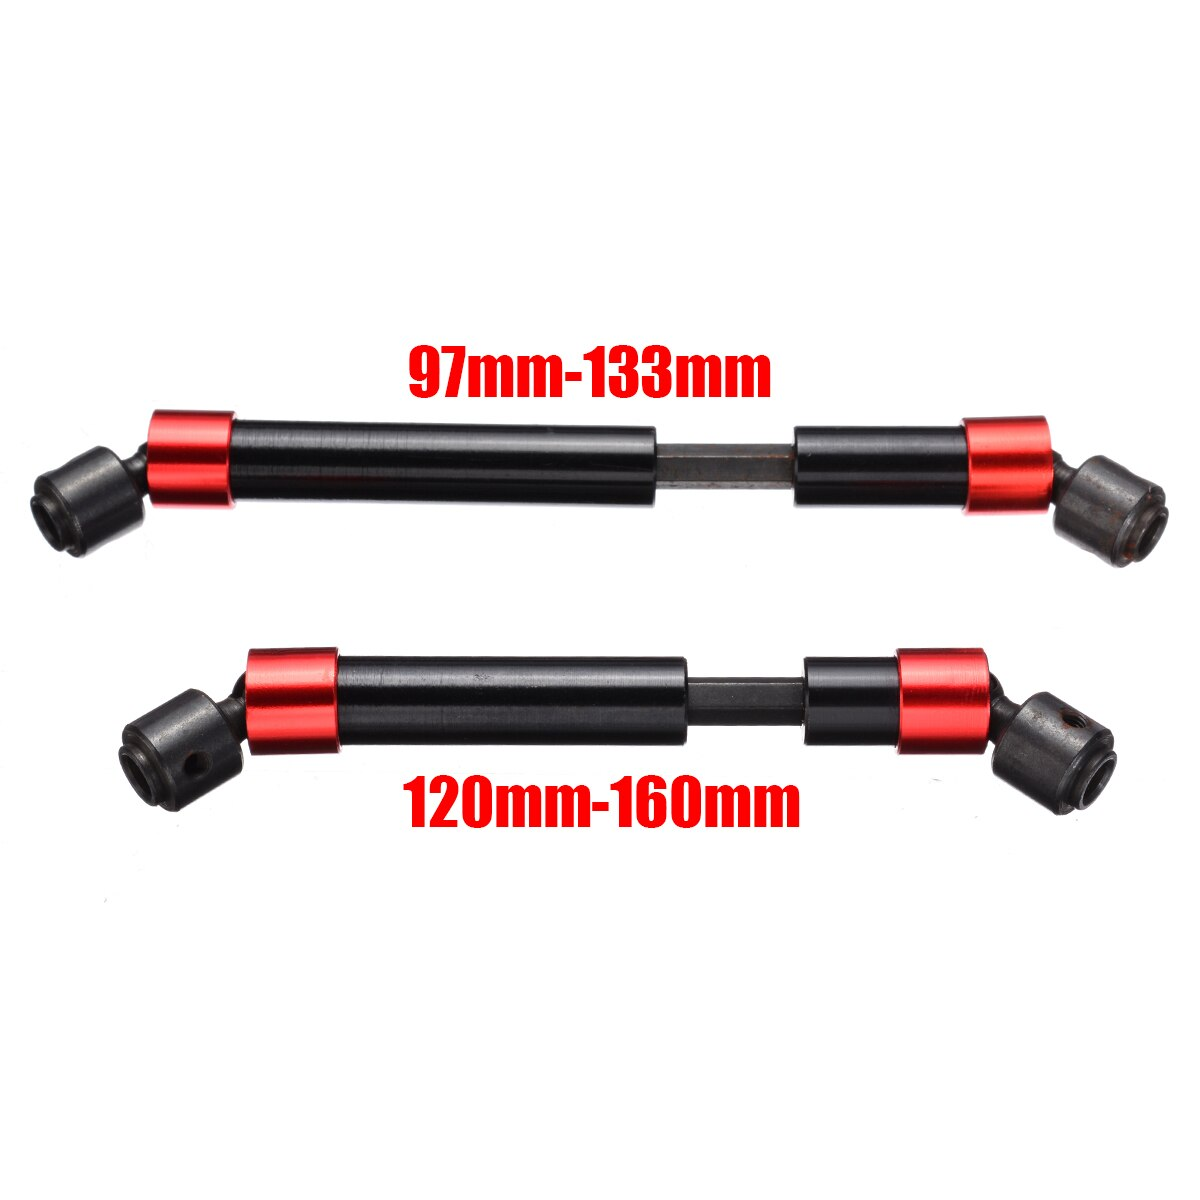 2pcs 97-133mm/120-160mm Red Black Reinforced Universal Joint Metal Drive Shaft for RC Car Part Accessories enlarge